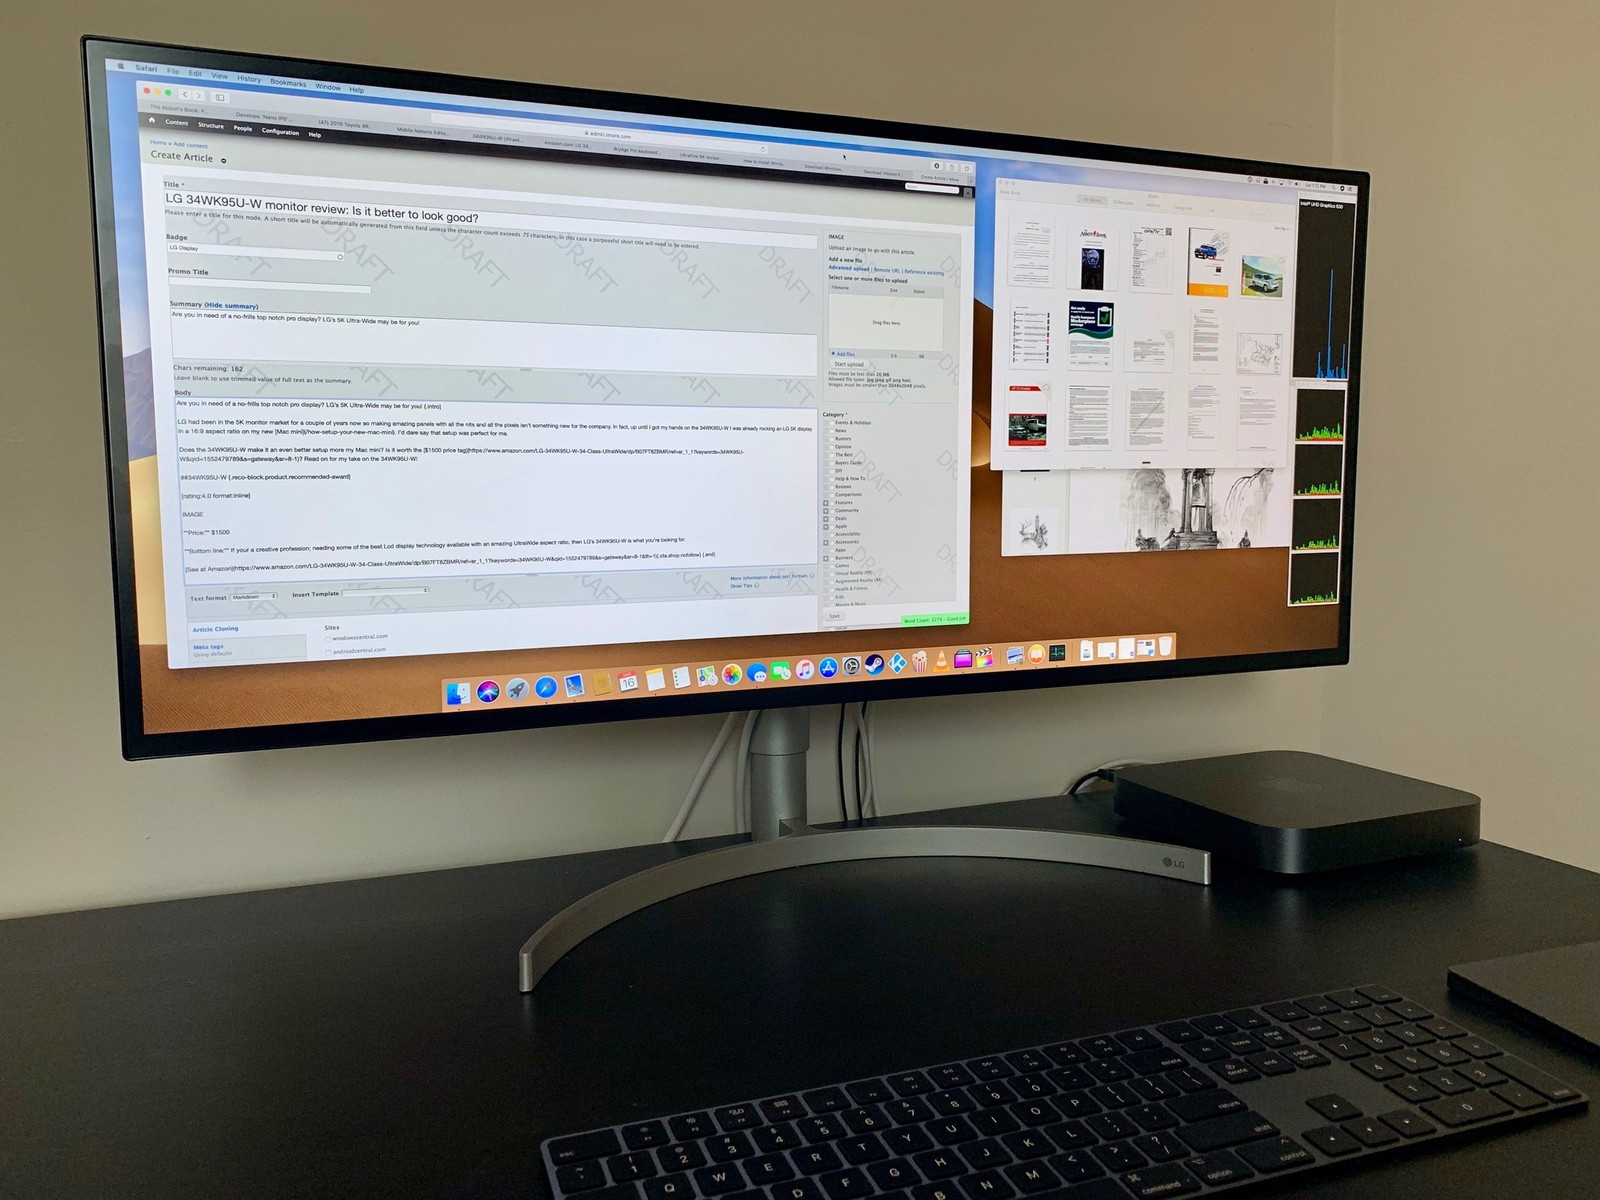 LG 34WK95U-W monitor review: Is it better to look good? | iMore